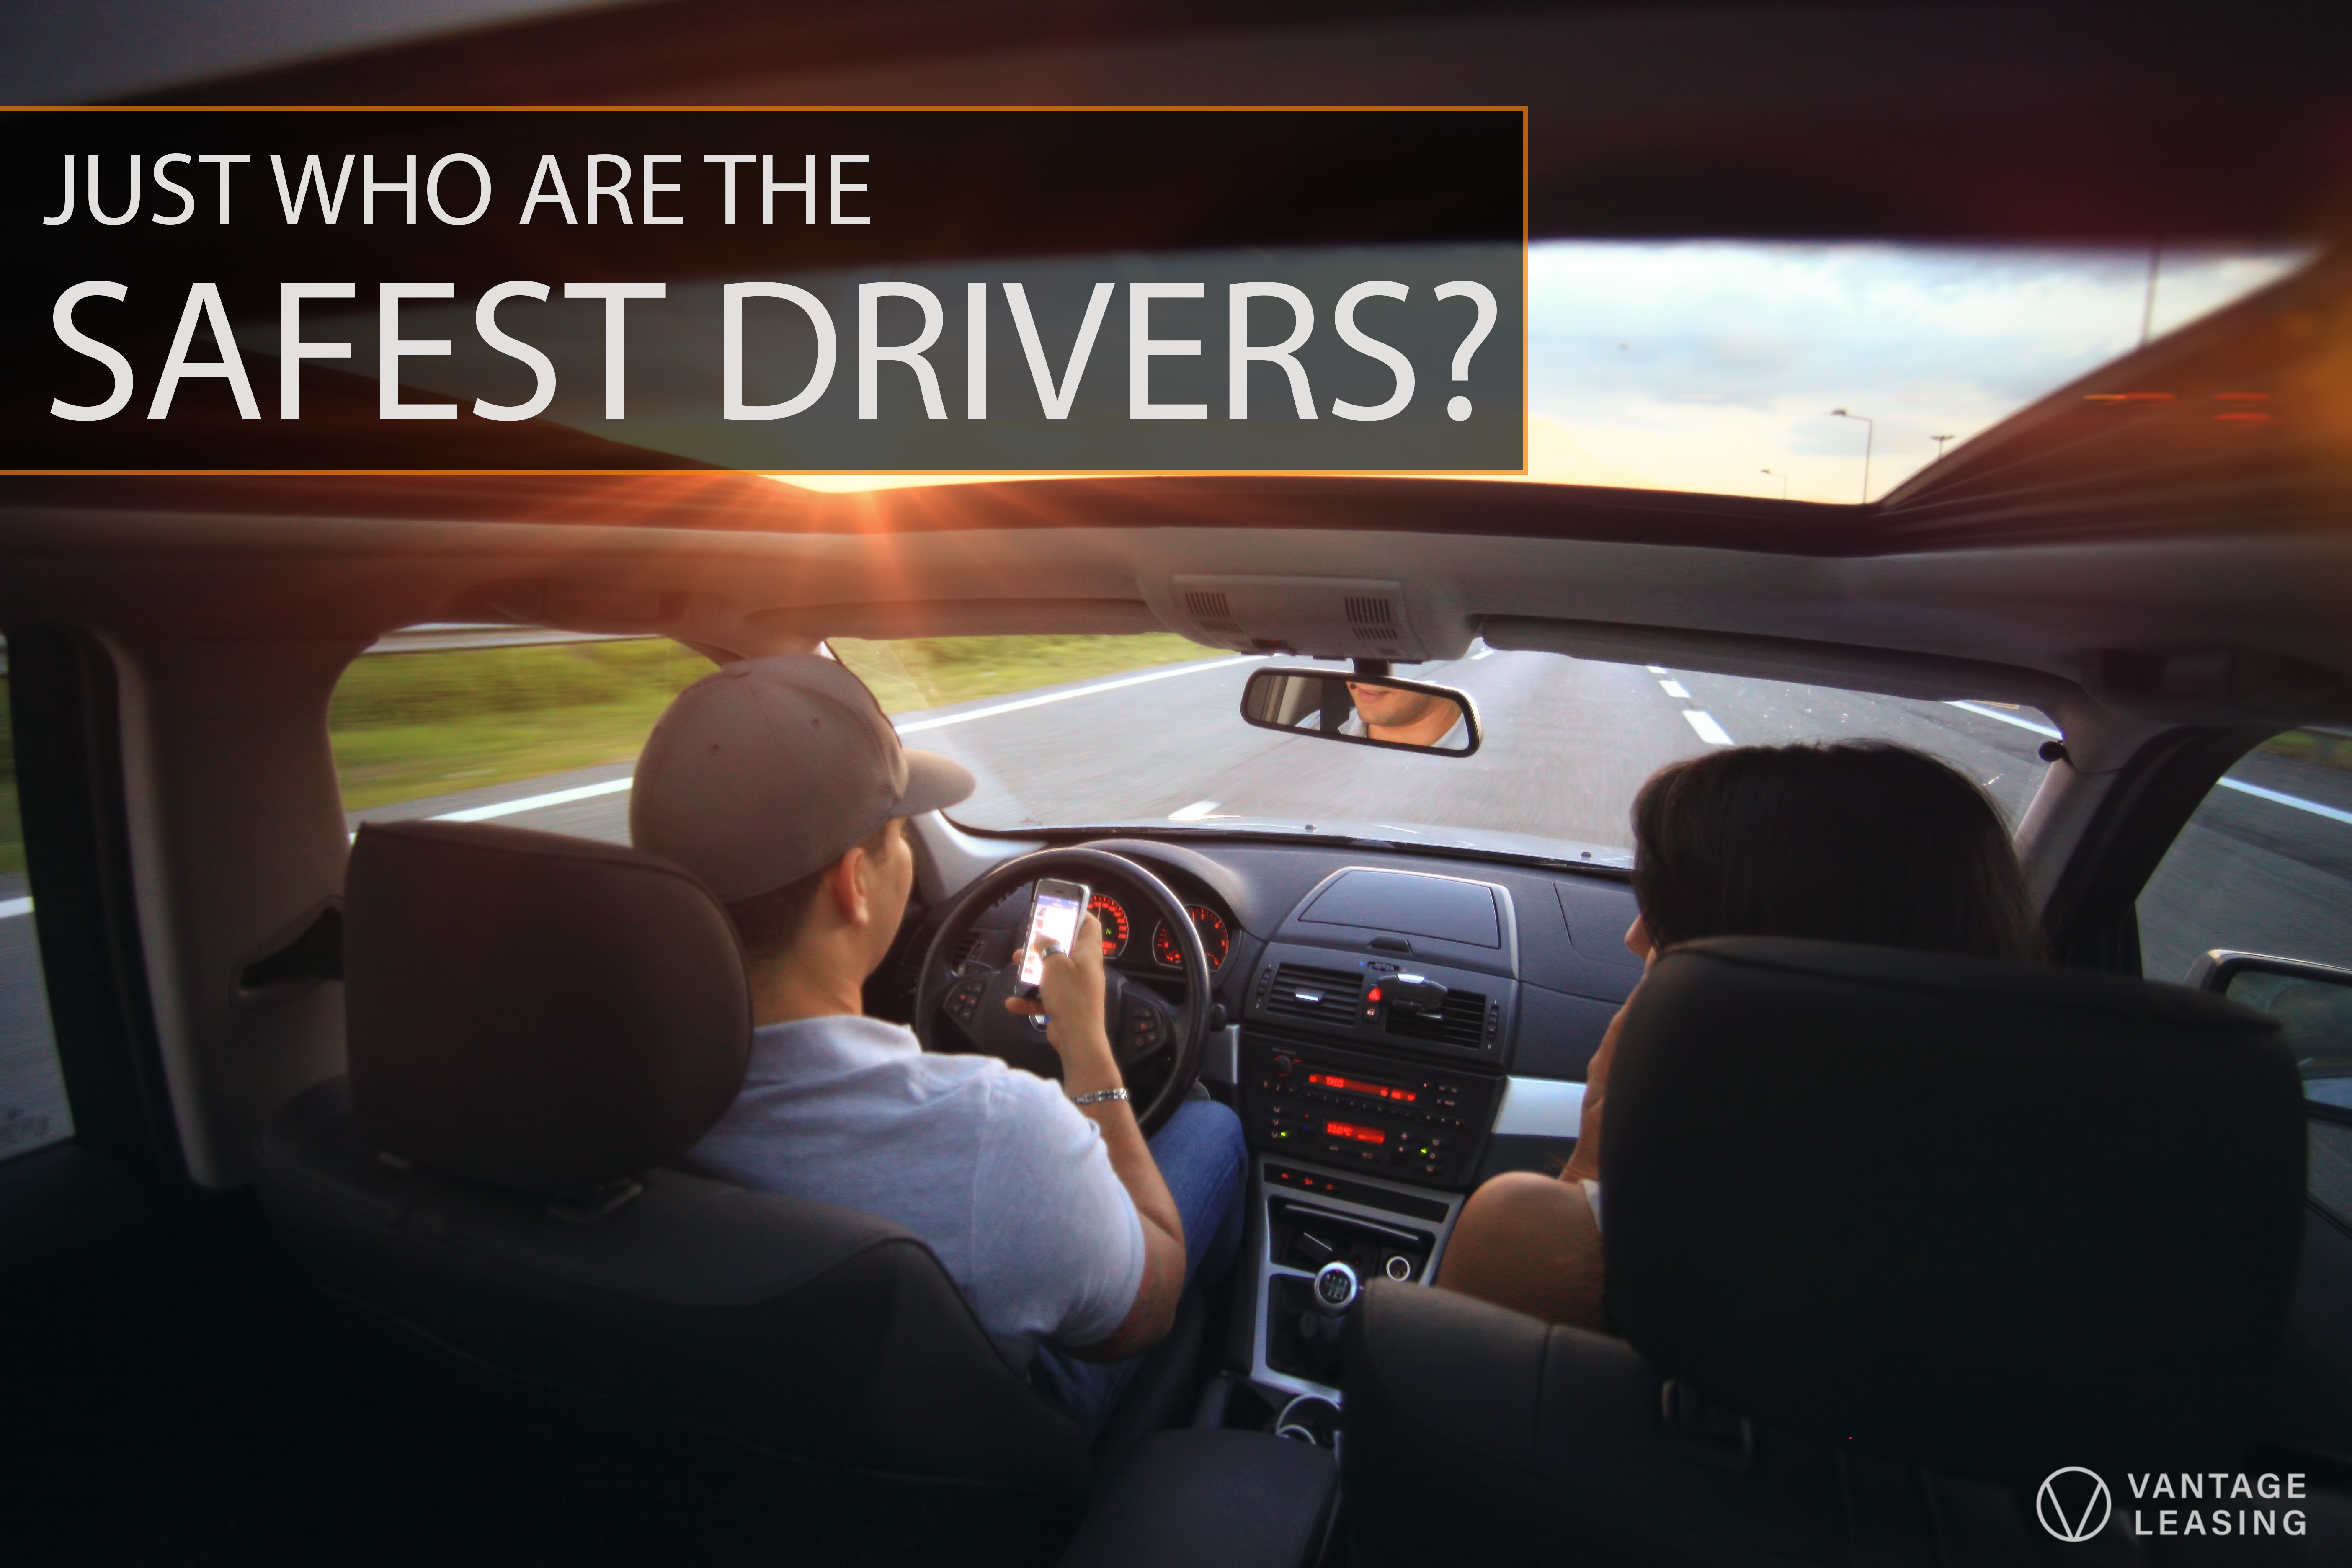 Car Leasing Study - Safe Drivers